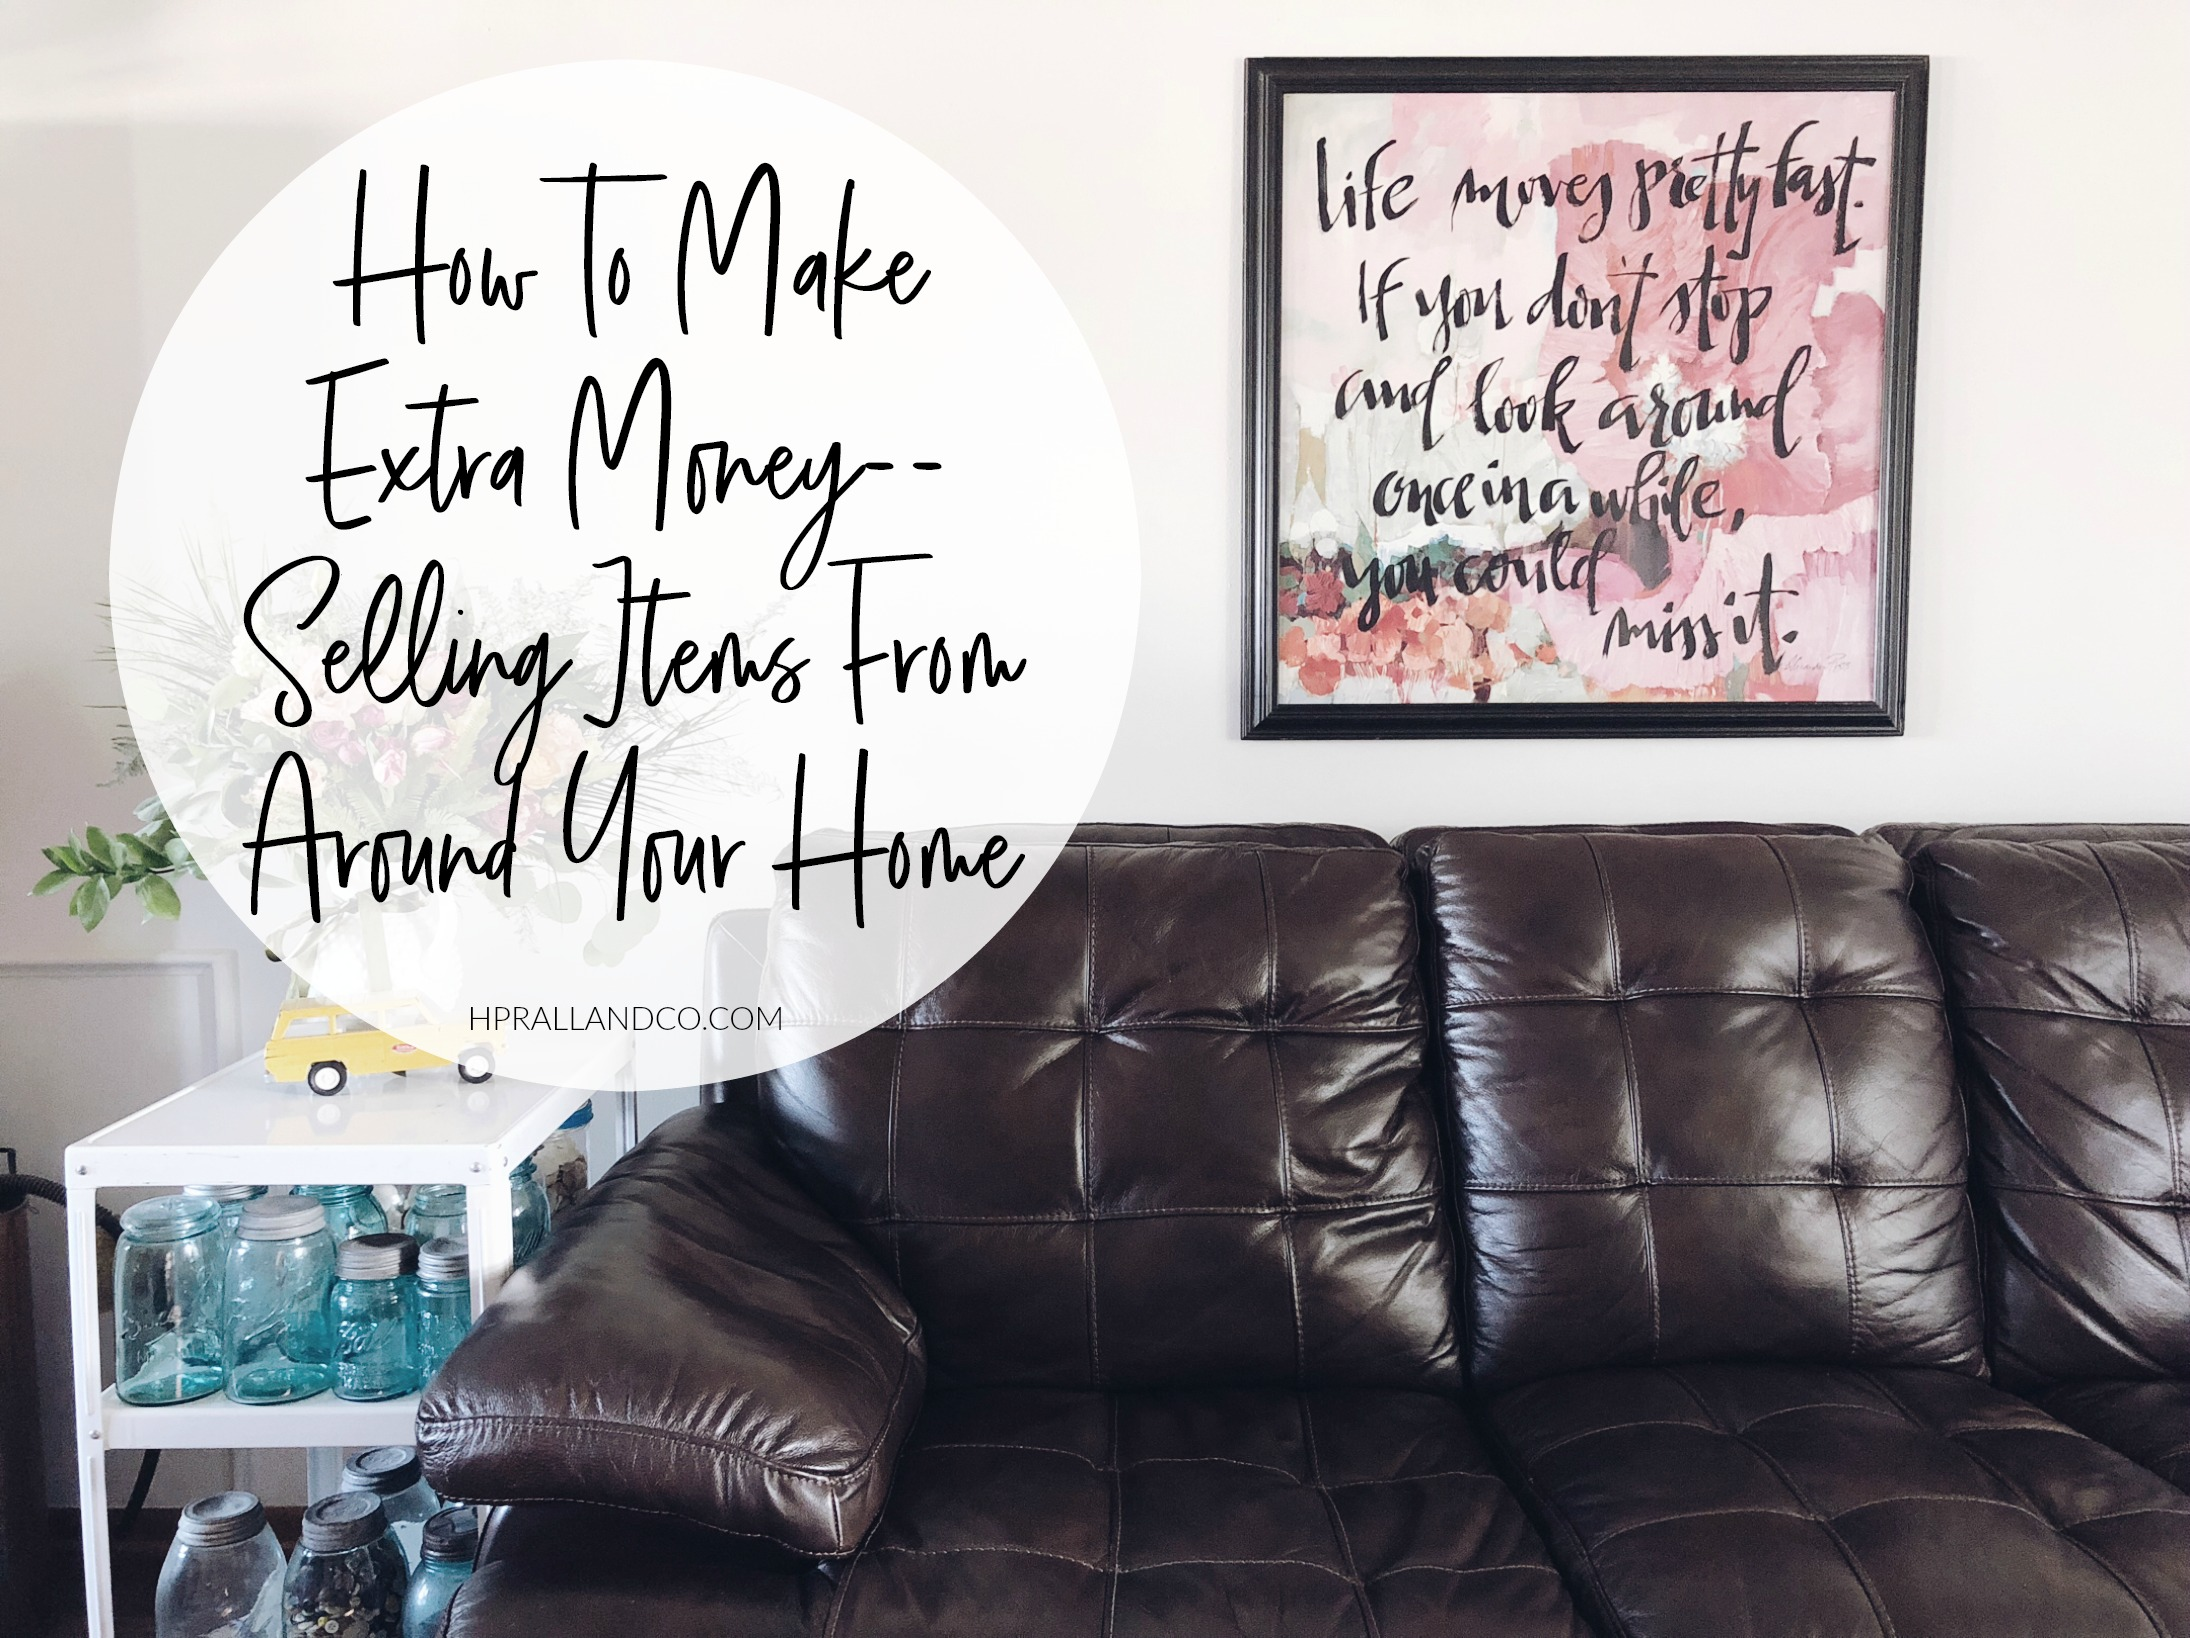 How To Make Extra Money--Selling Items From Around Your Home from HPrallandCo.com